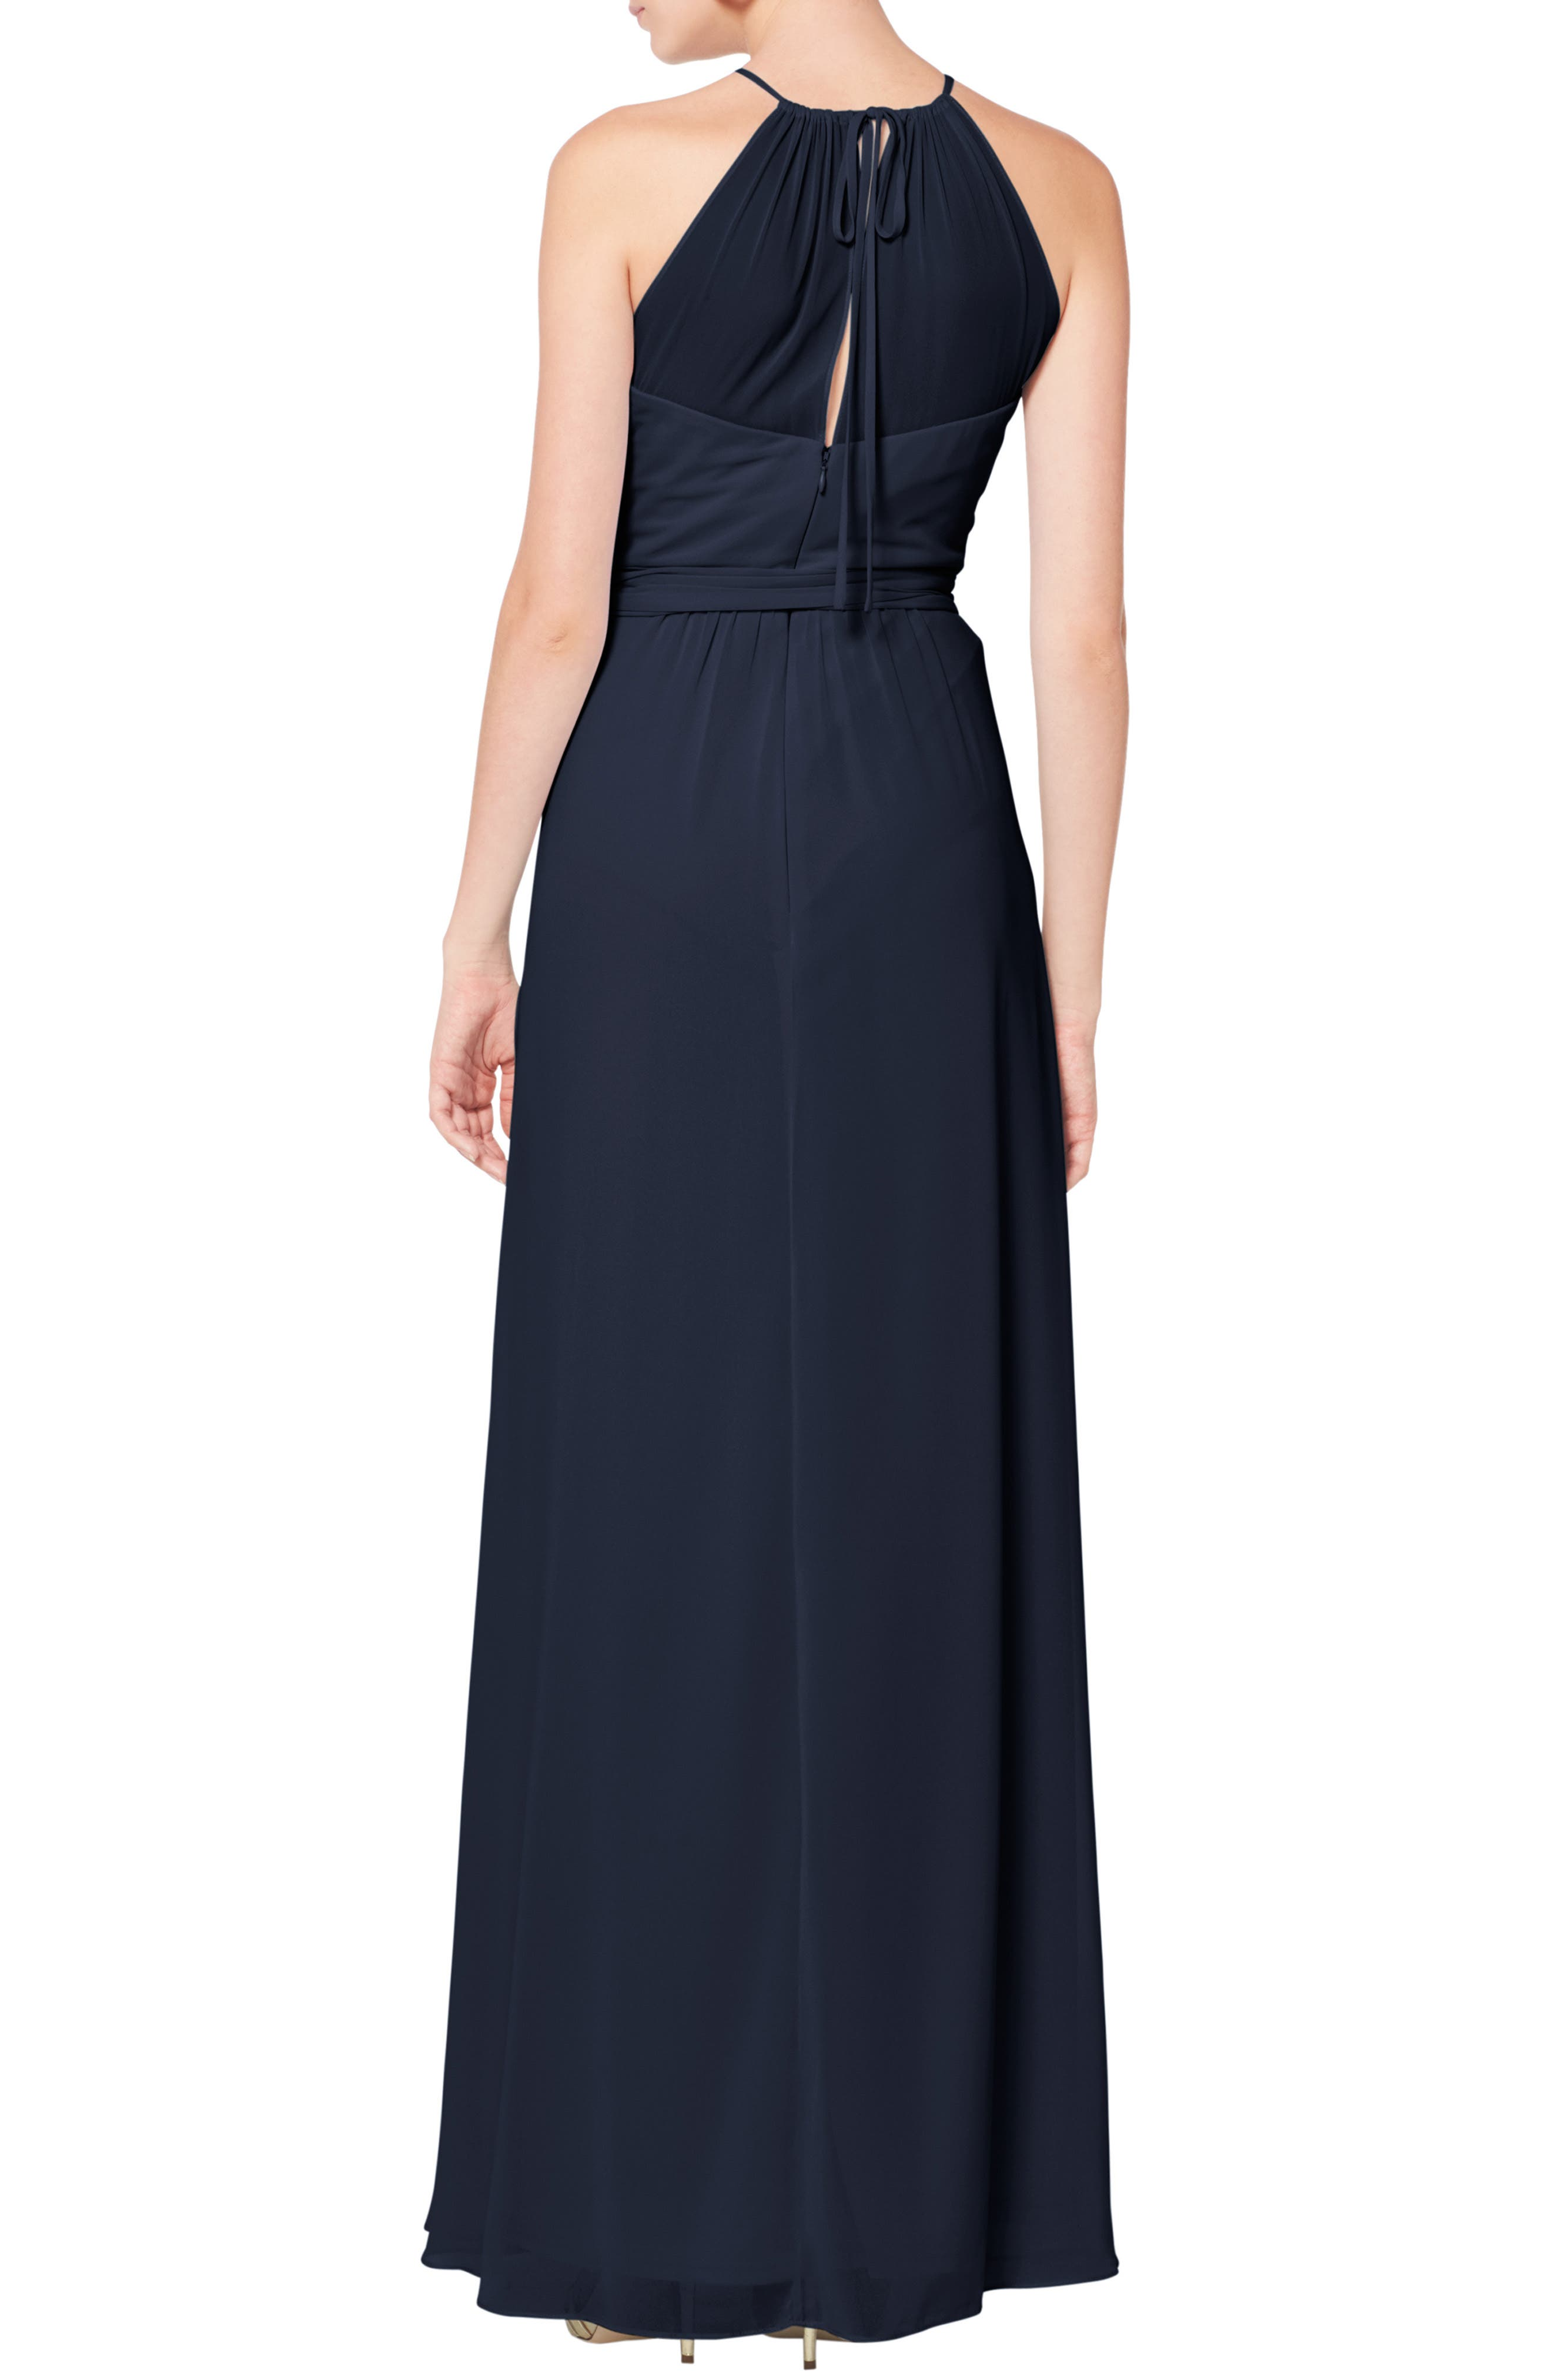 #LEVKOFF, Halter Neck Tie Detail Chiffon Gown, Alternate thumbnail 2, color, NAVY